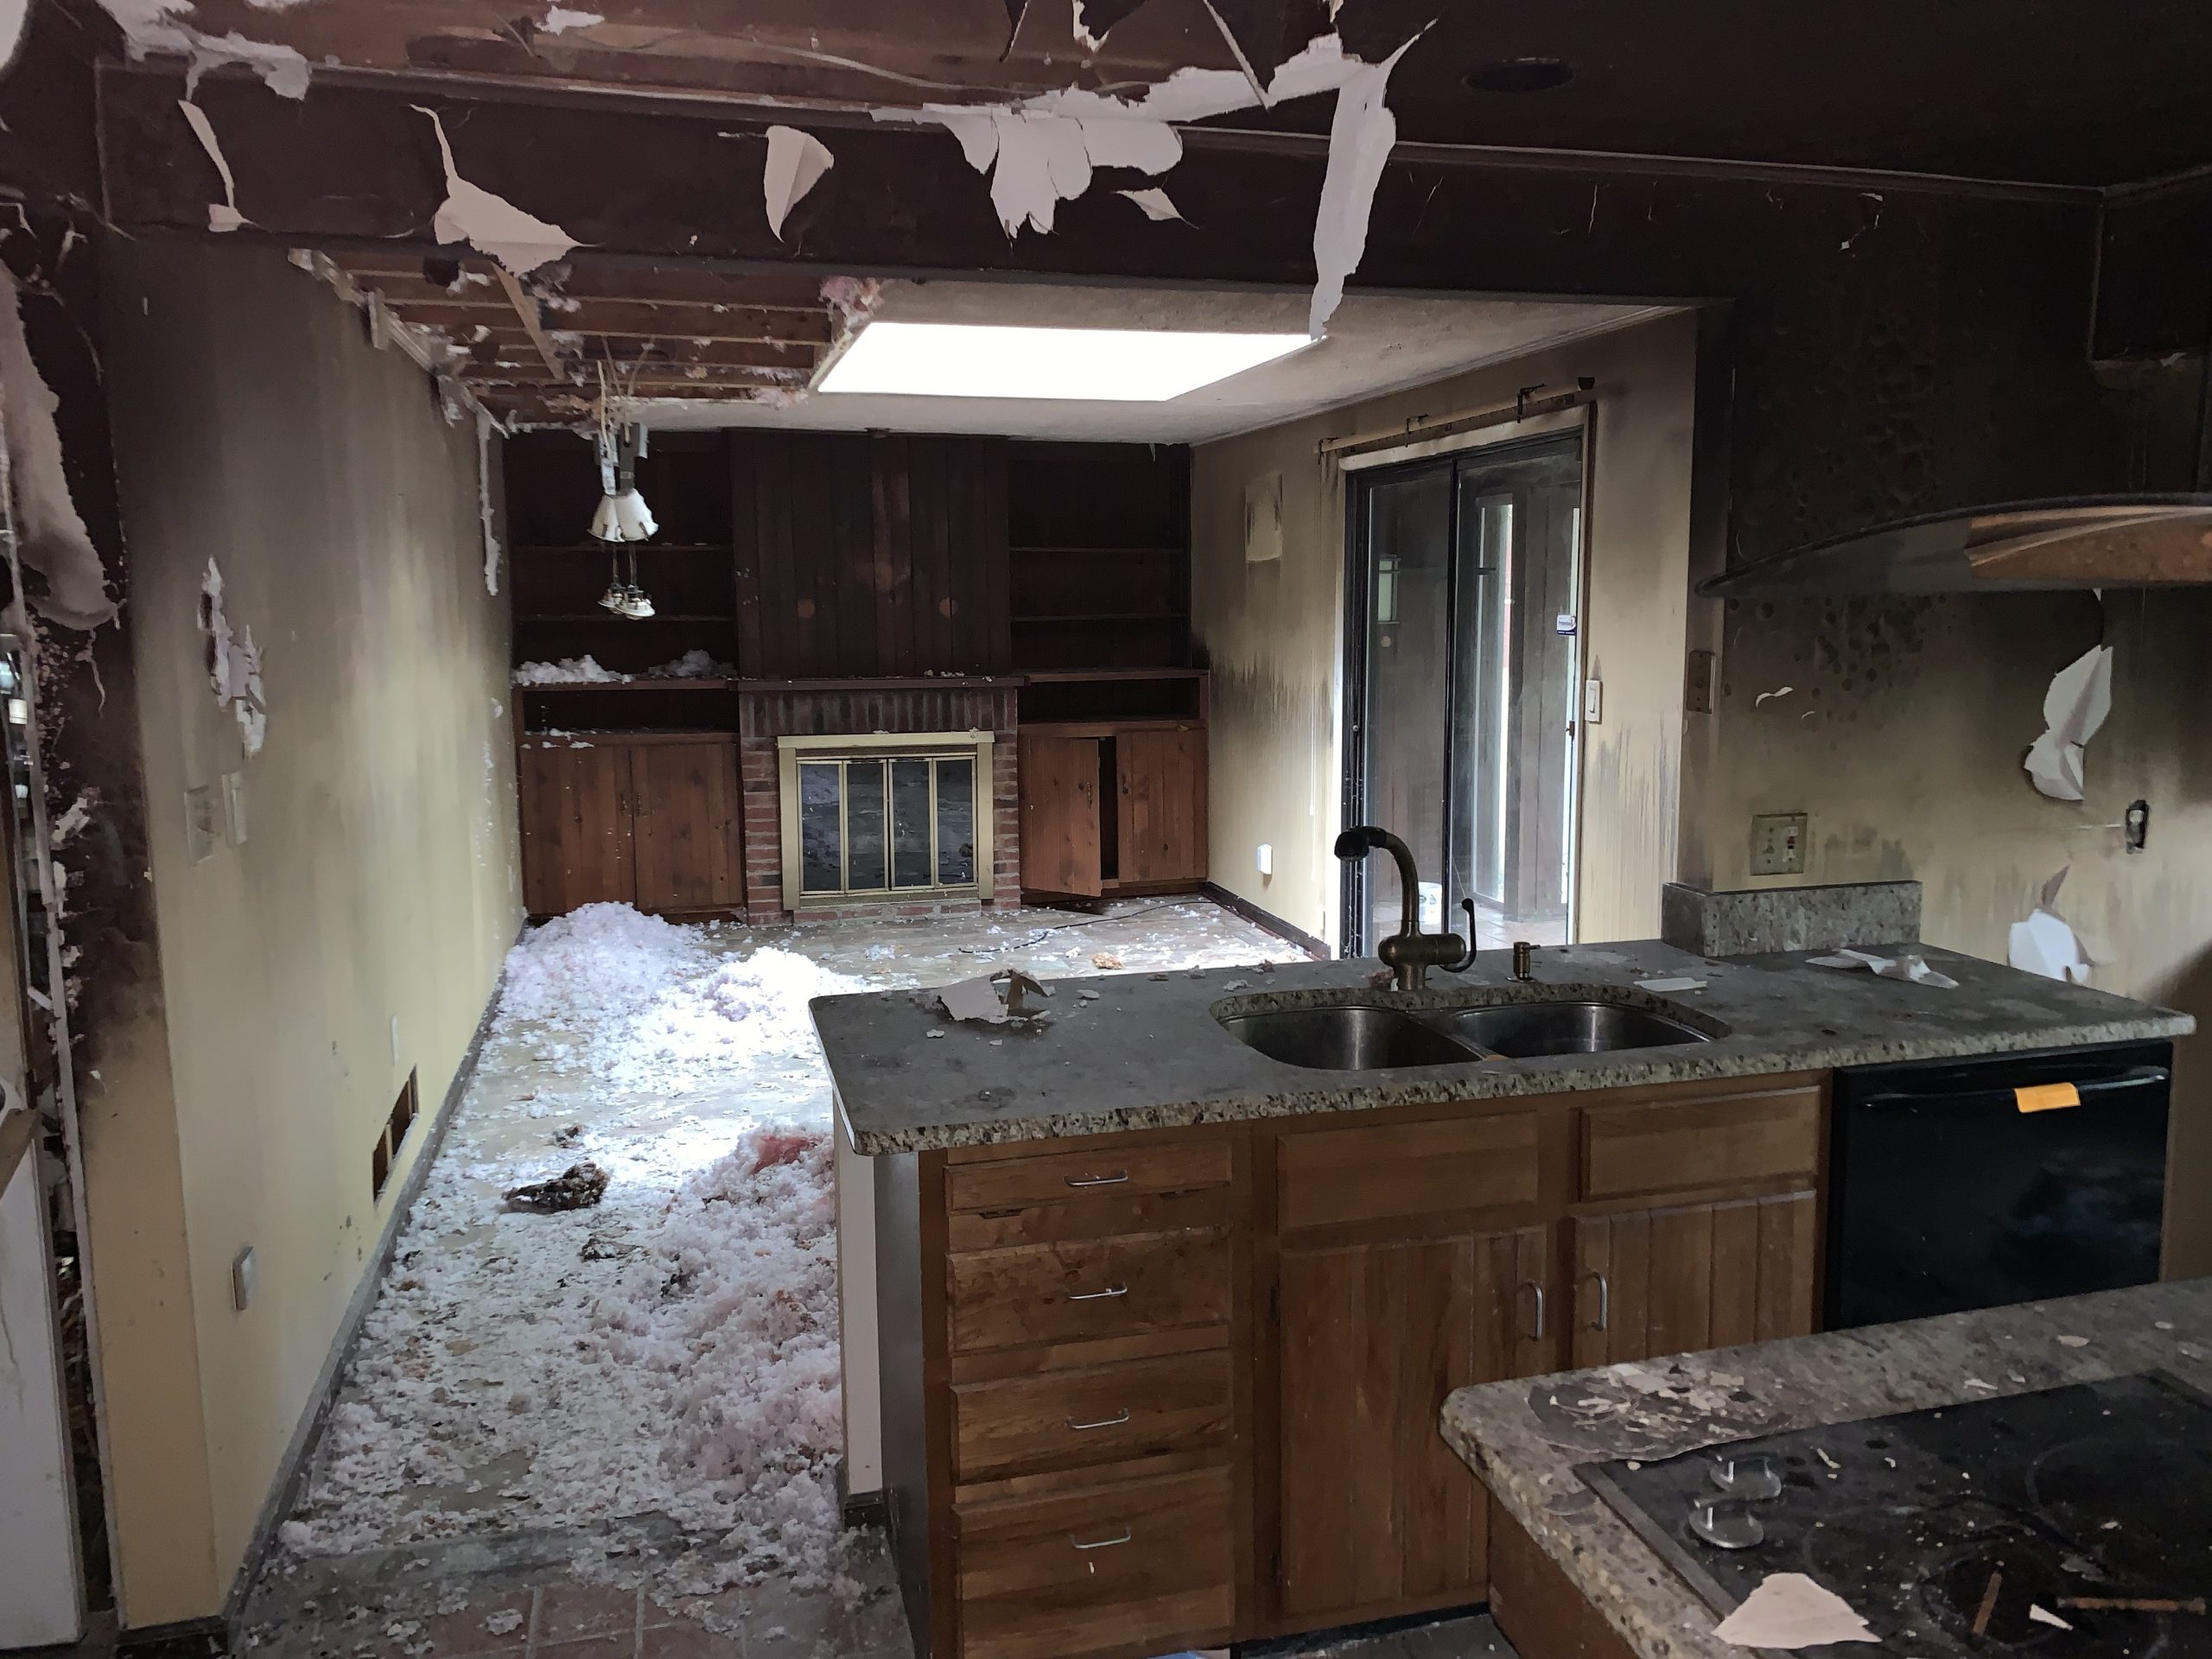 A torn up family room ready for an extreme home renovation project.